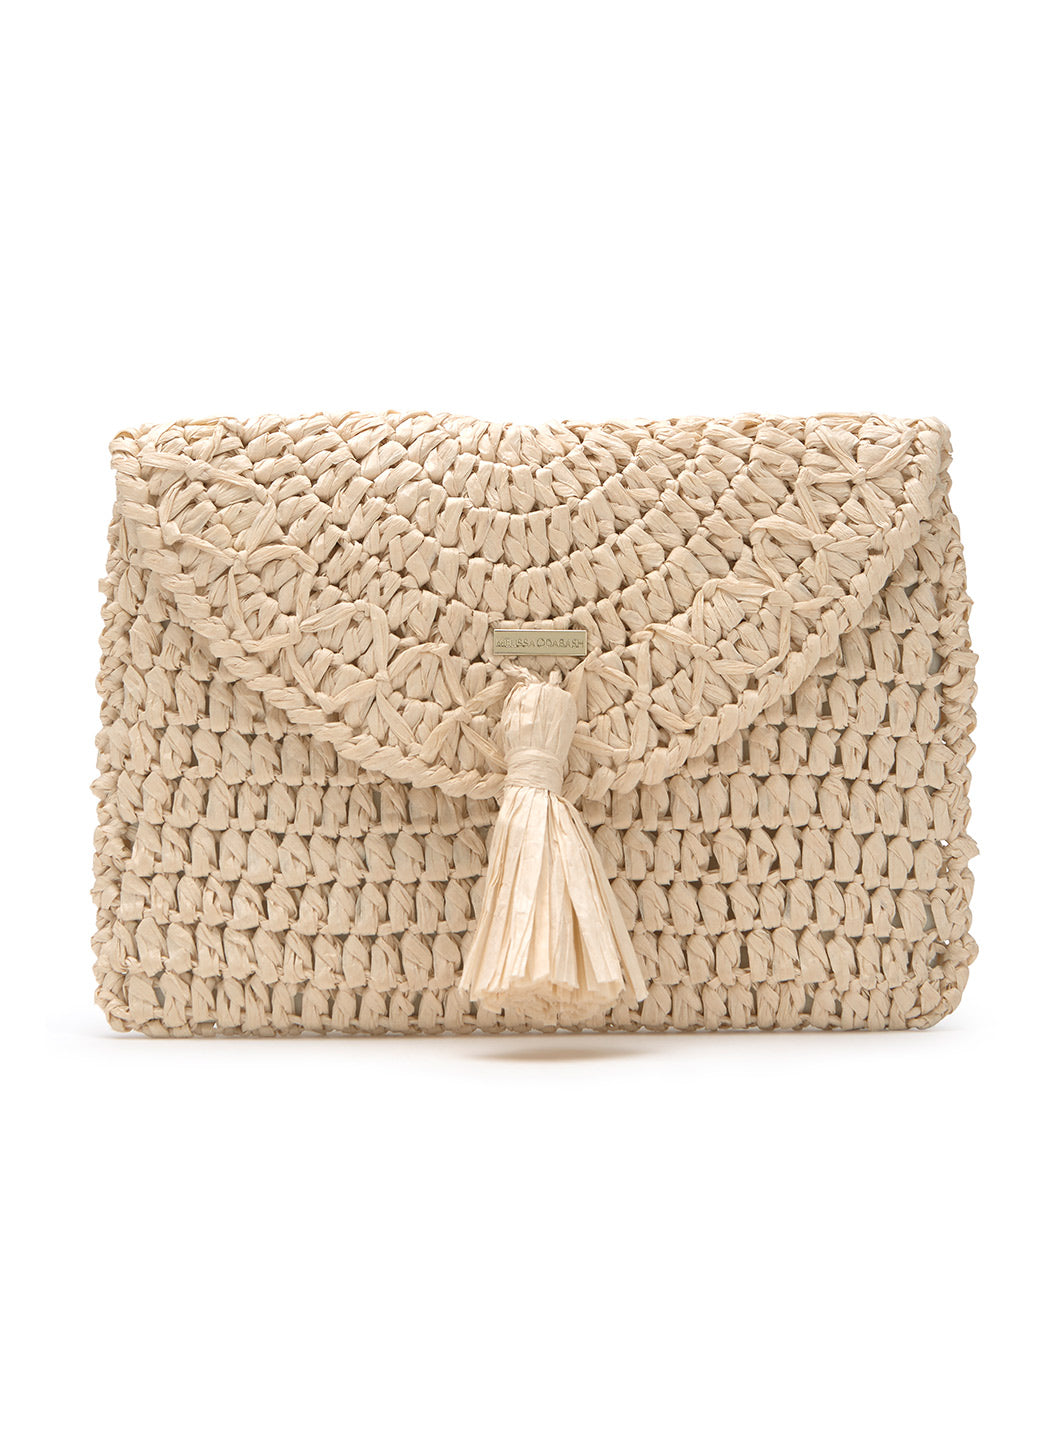 Anacapri Natural Raffia Clutch